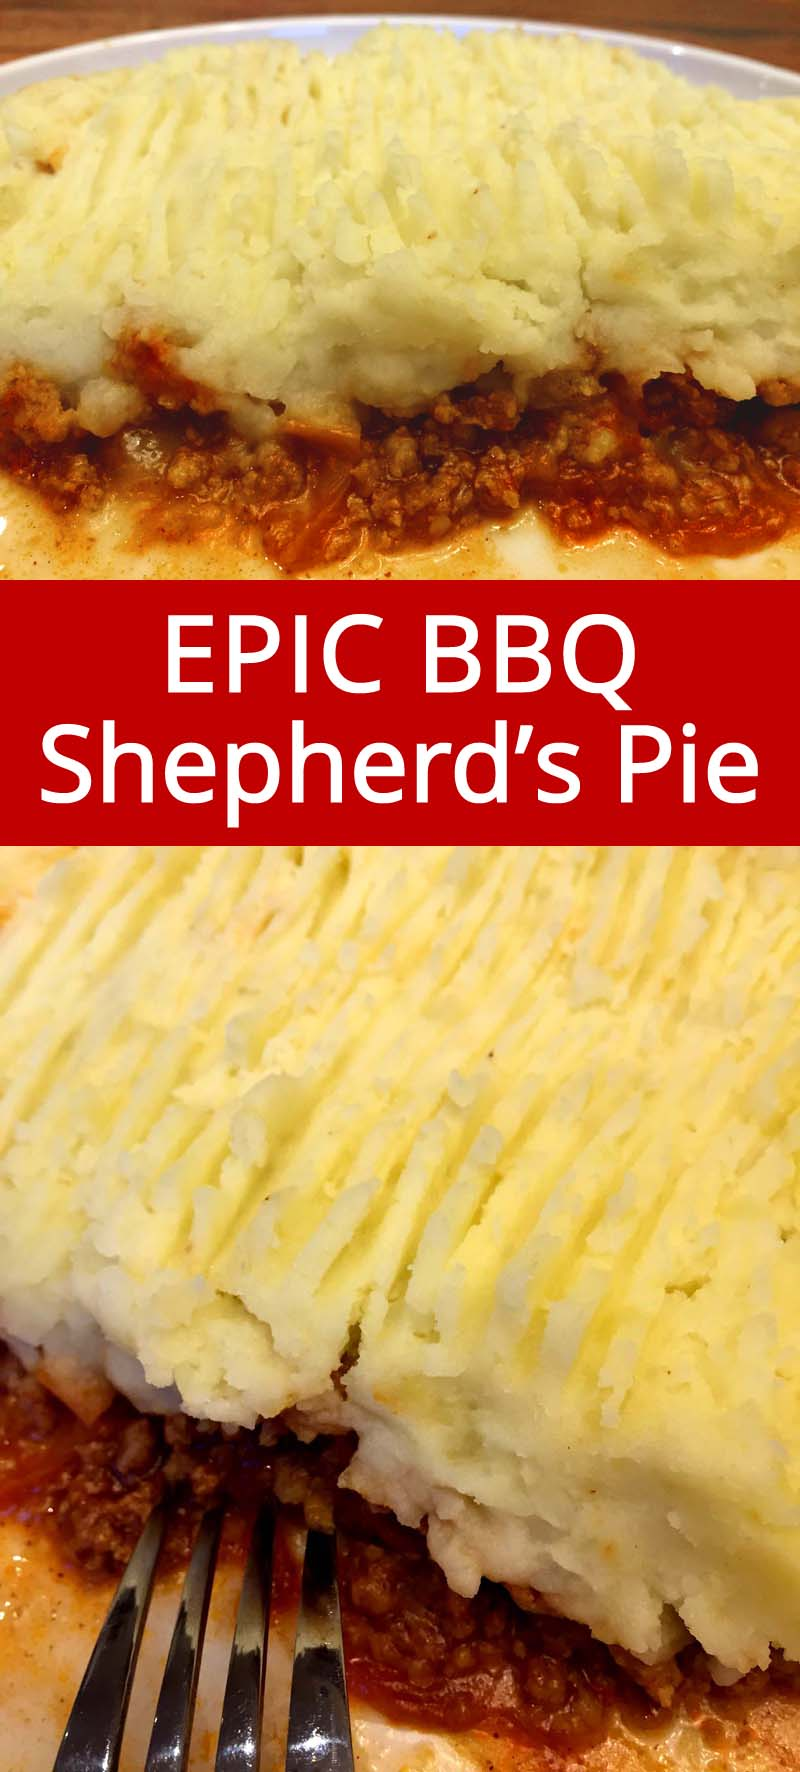 This ground beef BBQ shepherd's pie recipe is amazing! I love a good shepherd's pie, it's such a classic comfort food! This barbecue version is mouthwatering!